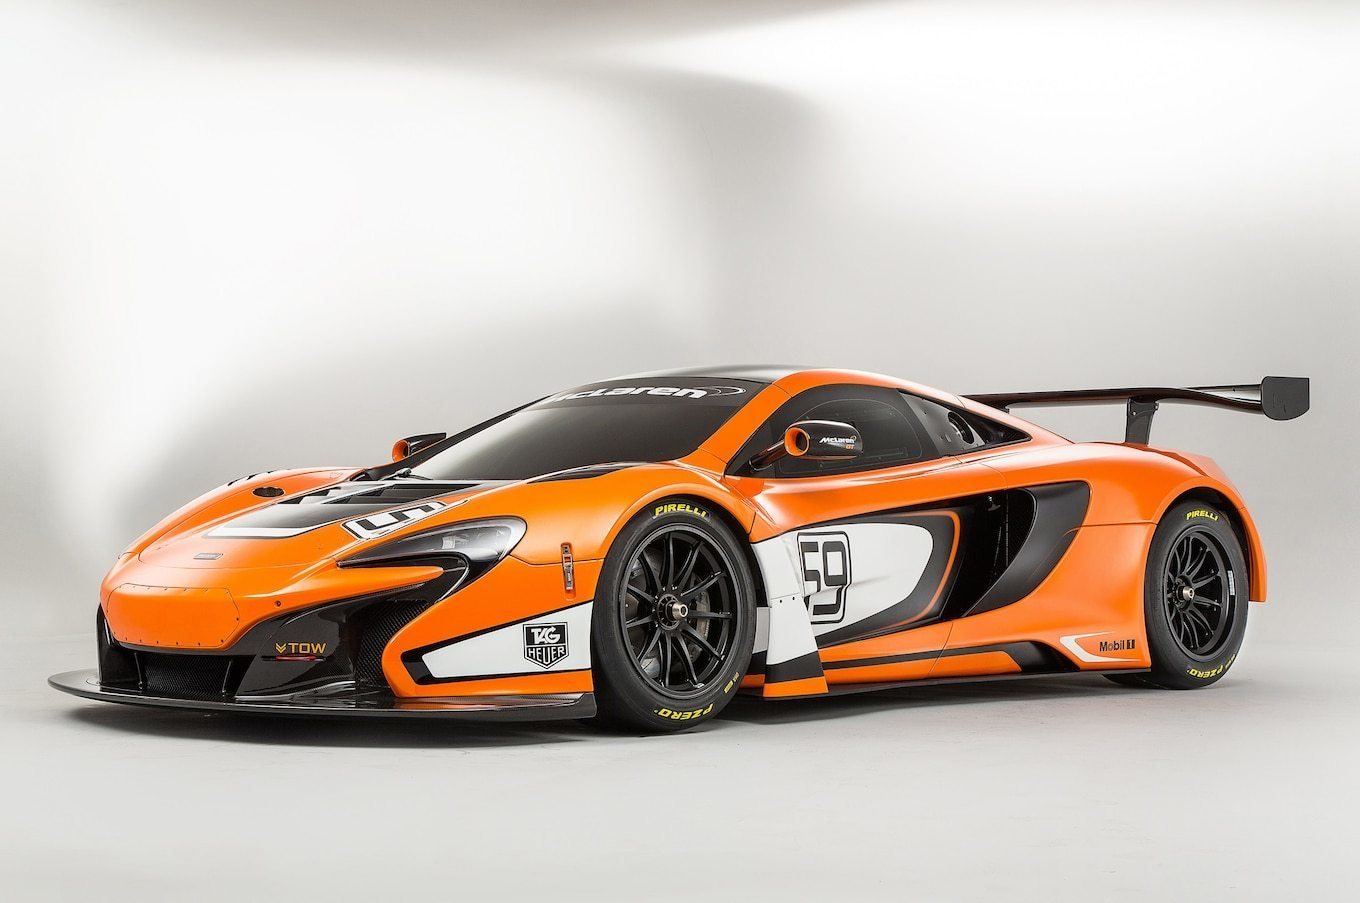 Latest Mclaren 650S Gt3 Race Car Revealed At Goodwood Motor Free Download